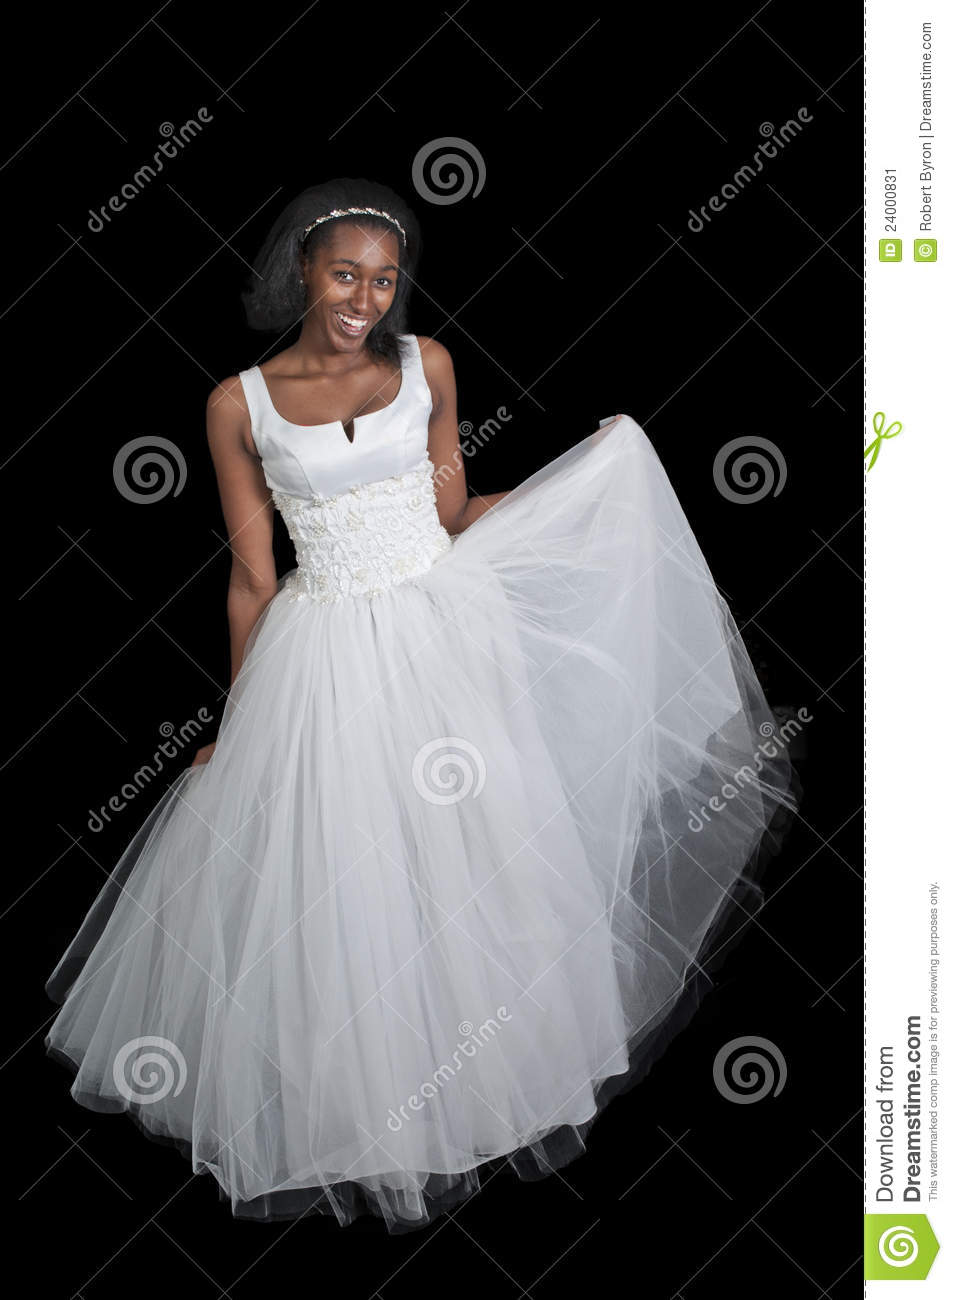 Black Woman In Wedding Dress Stock Image - Image of marry, happiness ...